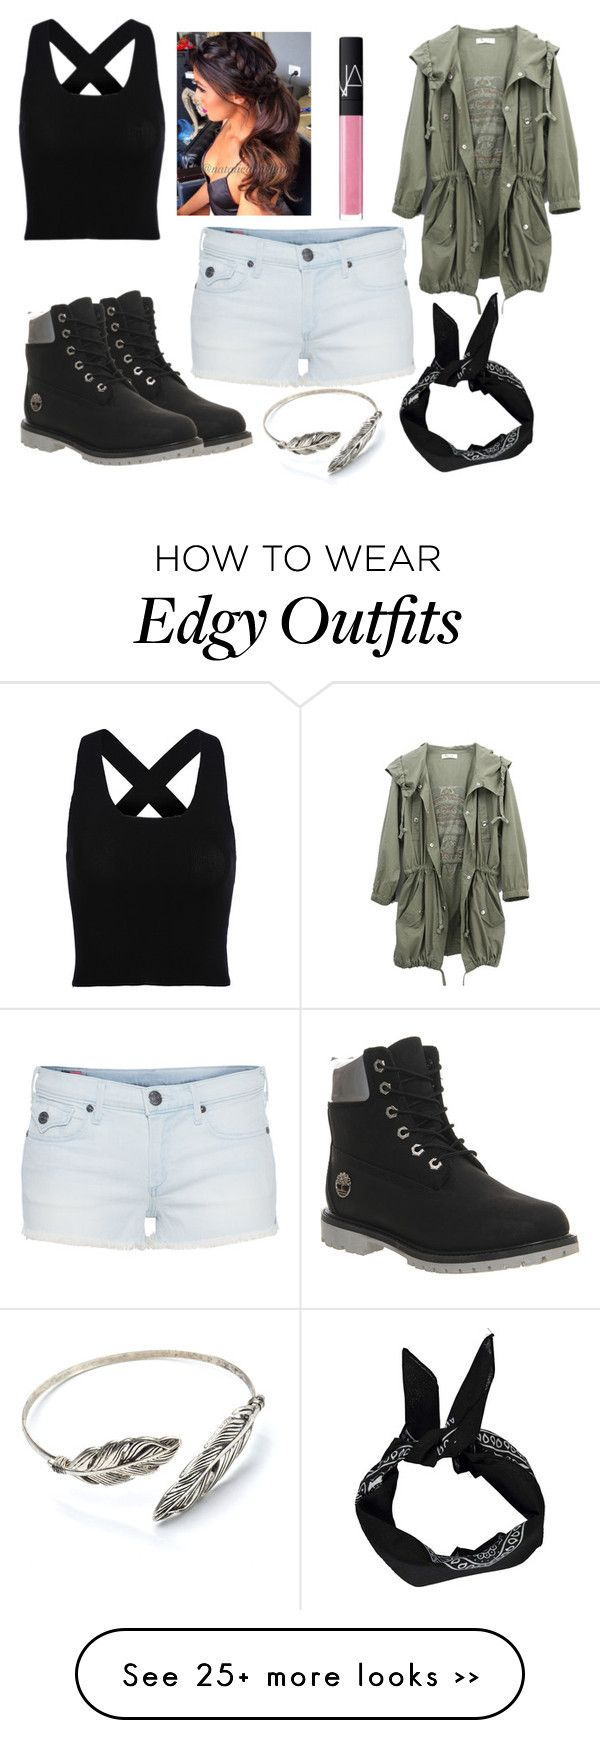 """Edgy Chic"" by lonepinegamer on Polyvore 